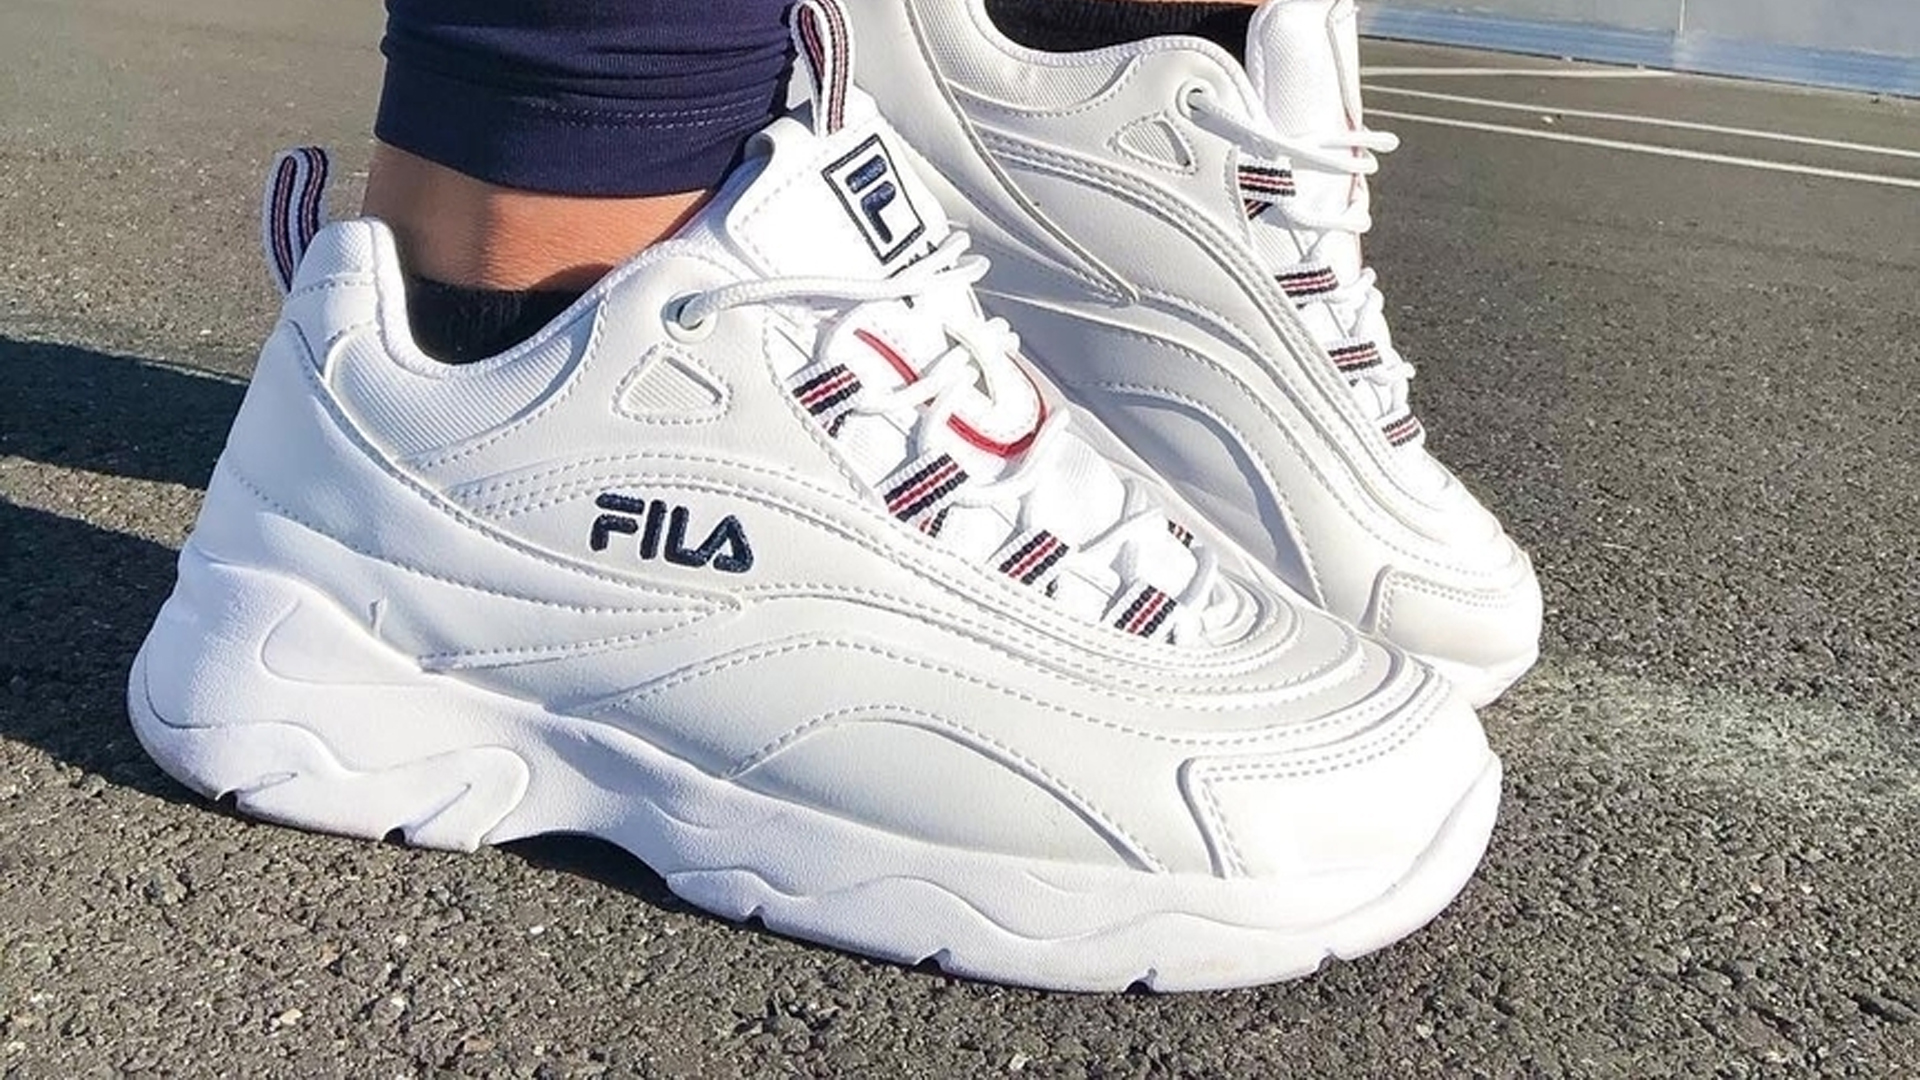 Fila Ray White Womens 5rm00522125 The Sole Womens